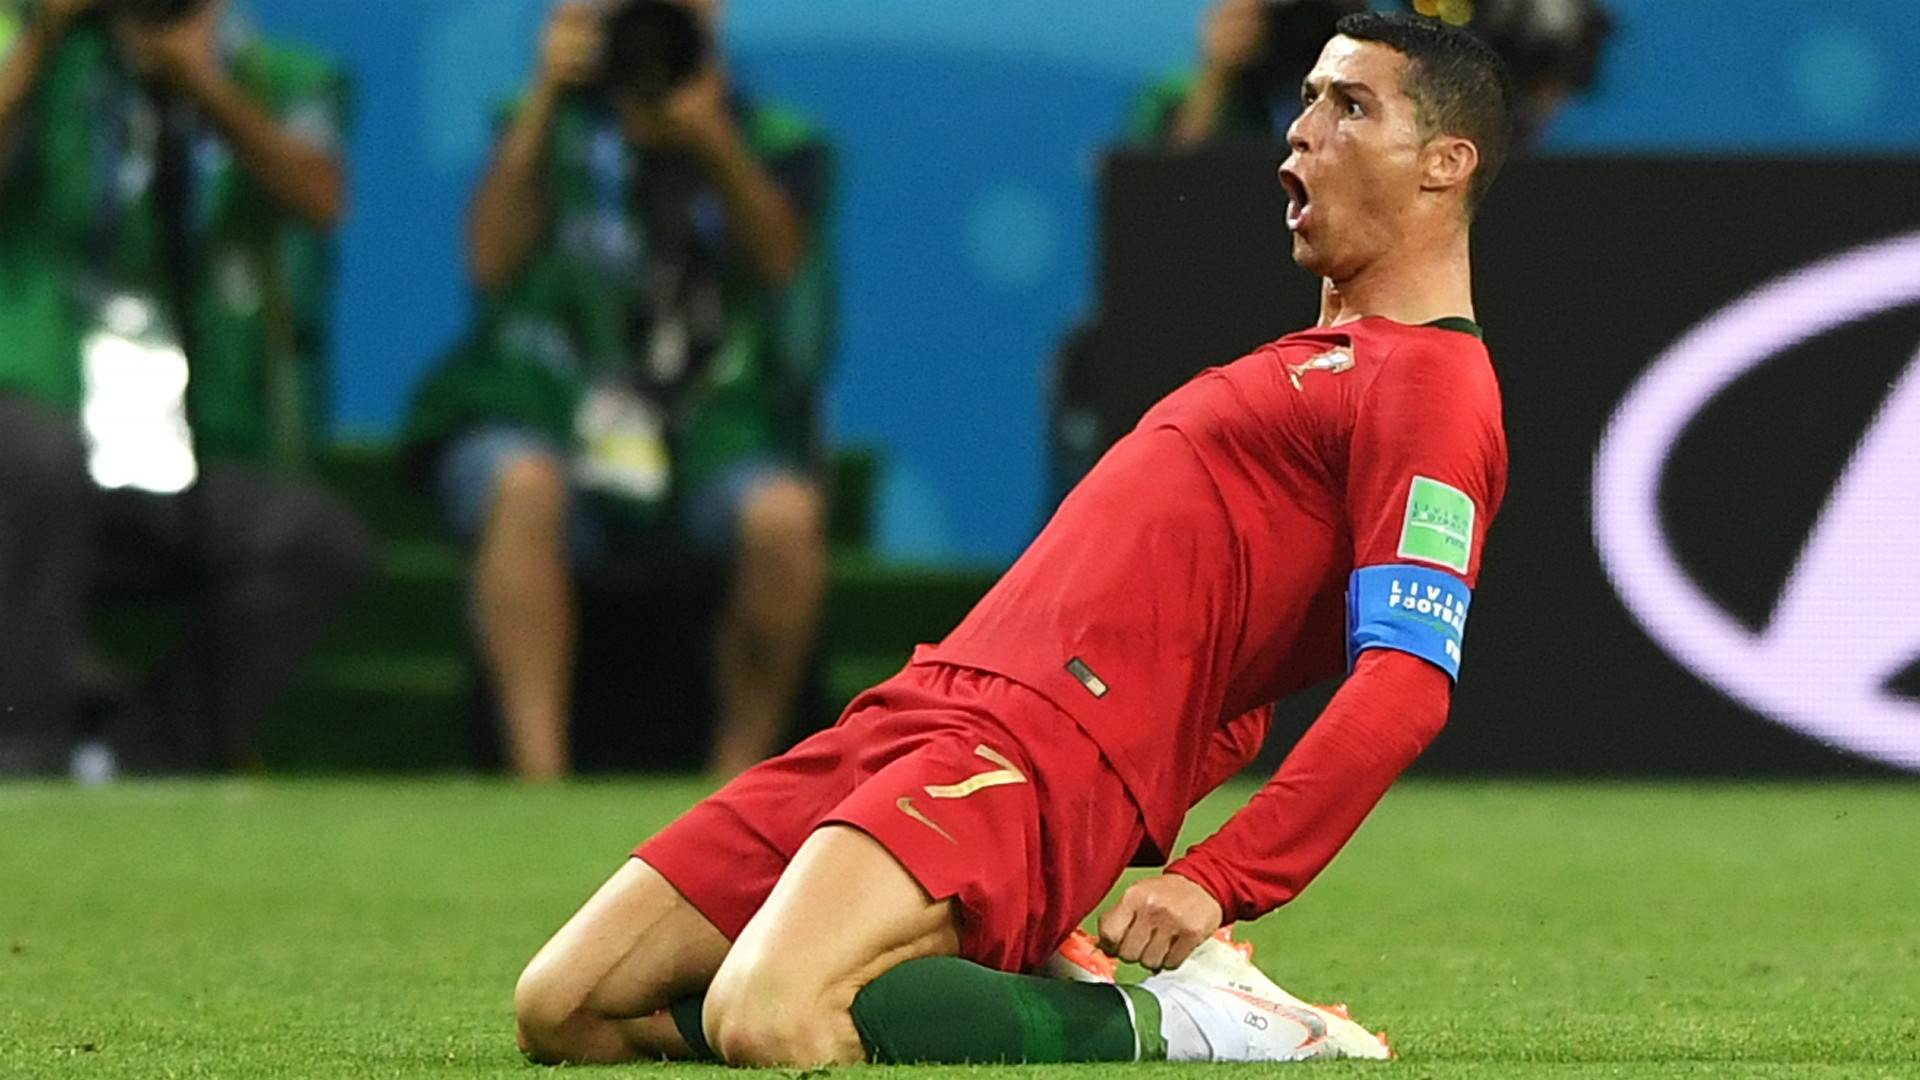 Morocco Player Claims Referee Asked Pepe For Cristiano Ronaldo's Shirt